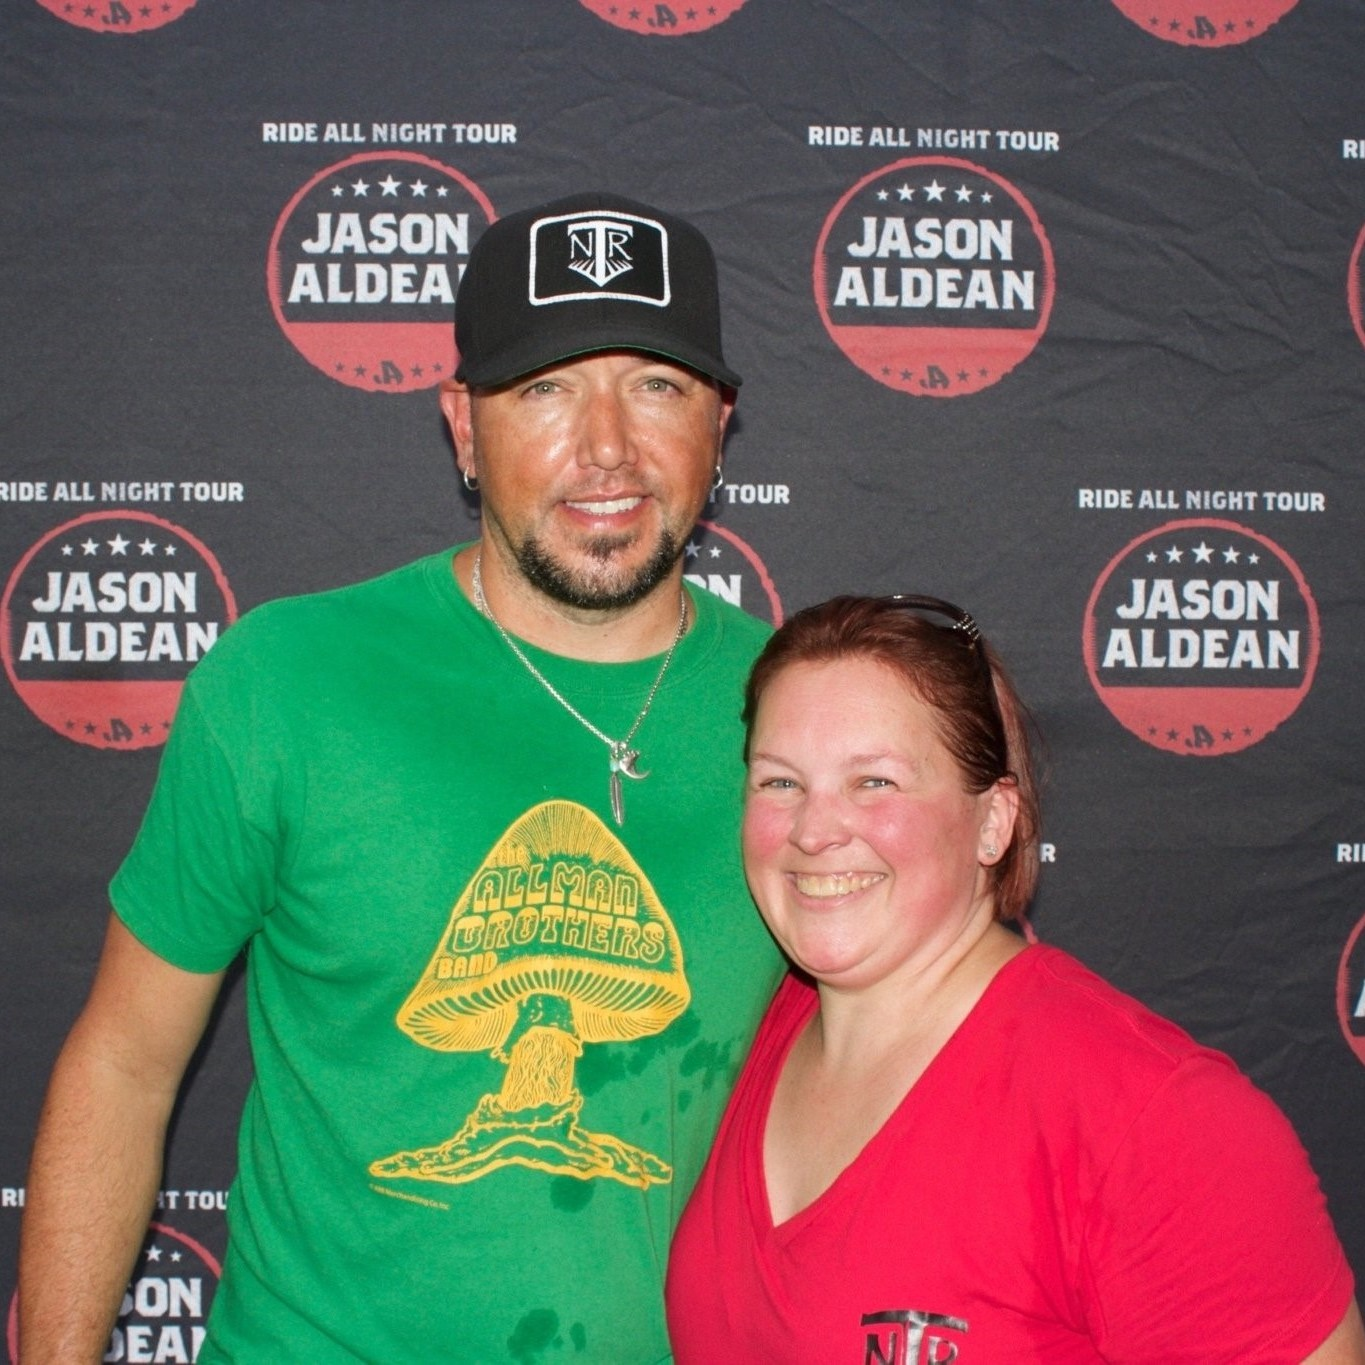 CONGRATULATIONS TO THE ALDEAN ARMY NOVEMBER FAN OF THE MONTH